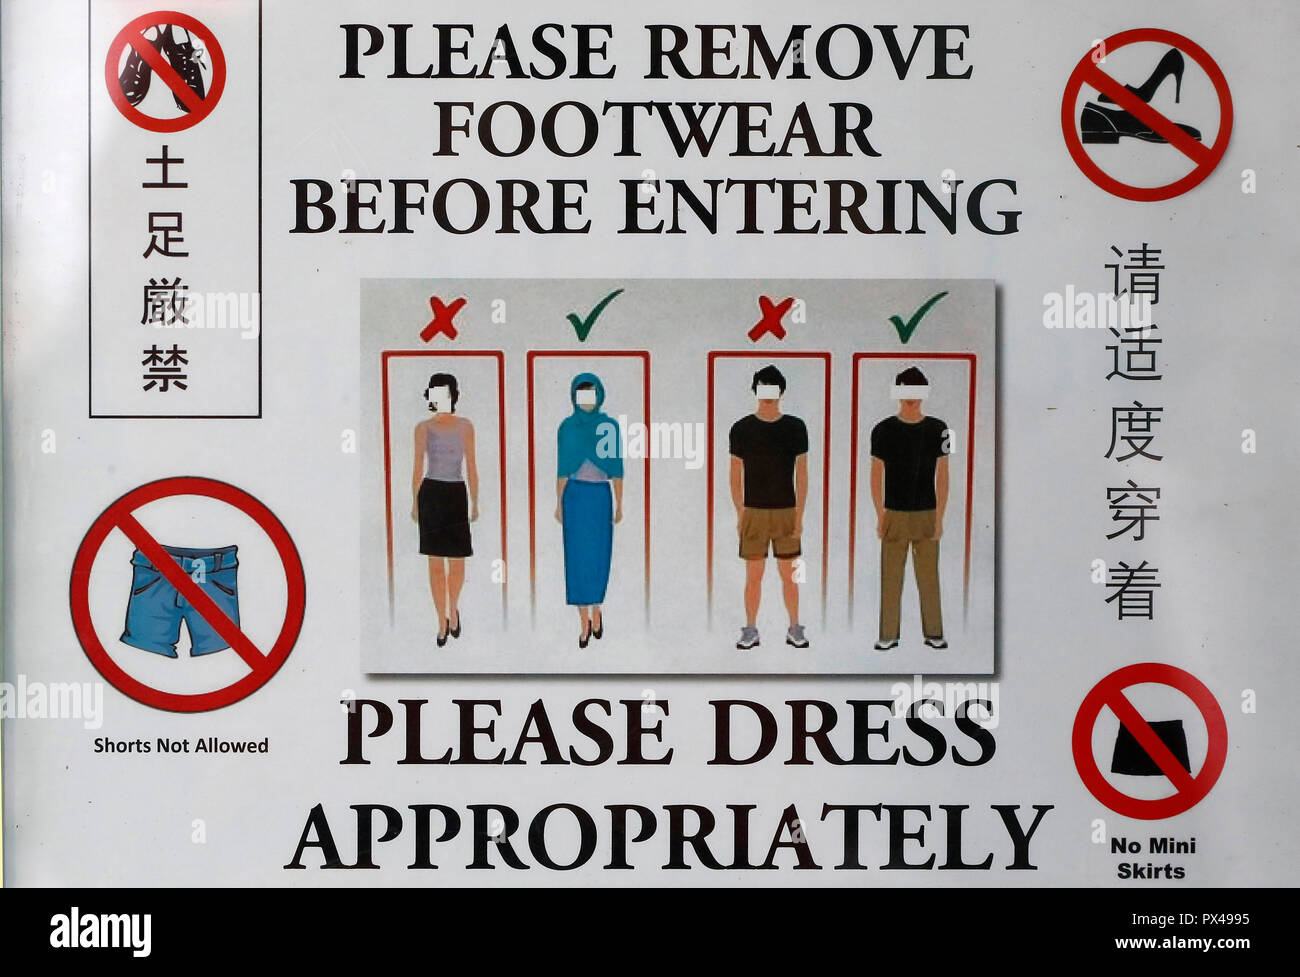 The Green Mosque. Remove foot wear and dress approriately. Dress code.  Singapore. - Stock Image